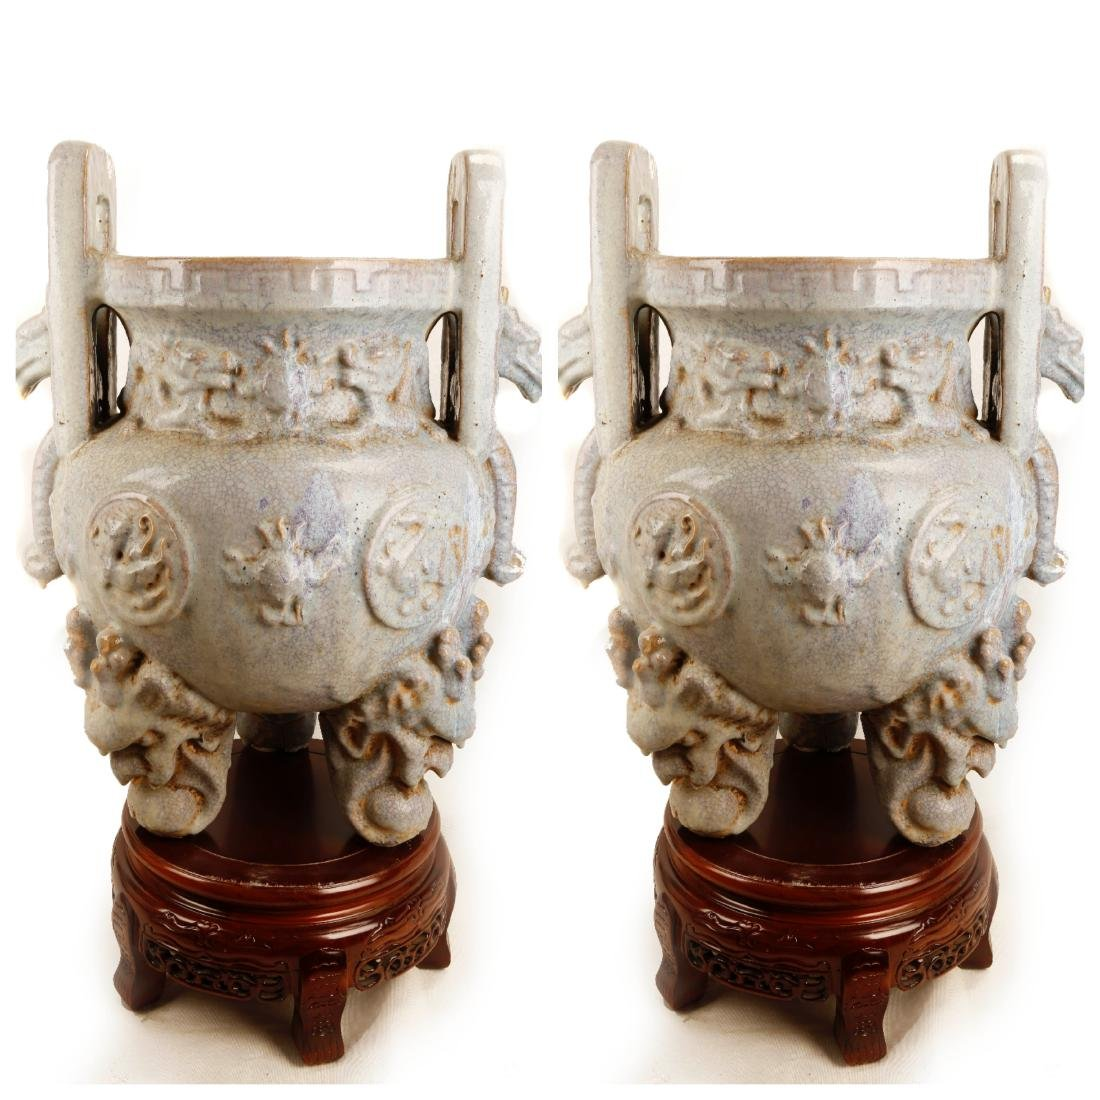 (2)   A PAIR OF MING DYNASTY STYLE JUNYAO CELADON SKY-